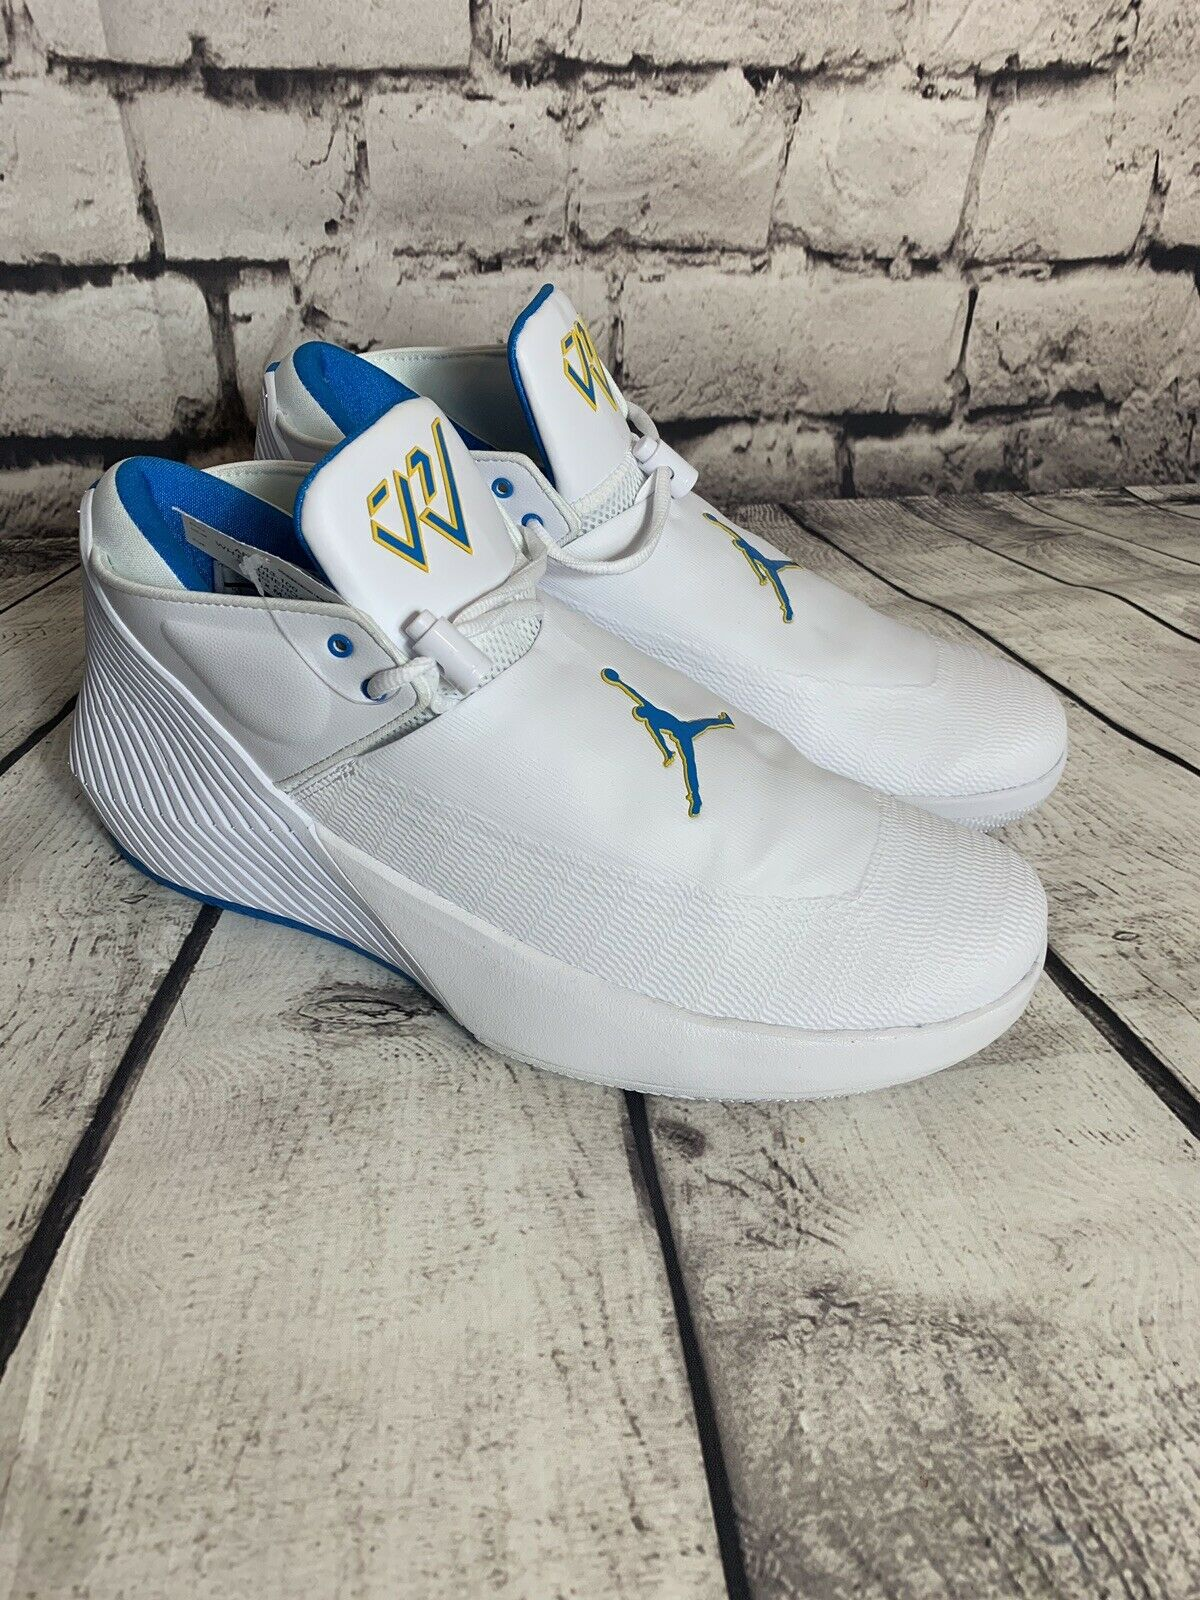 Mens jordan schuhe Why Not Not Not zero.1 low UCLA Größe 13 00daca